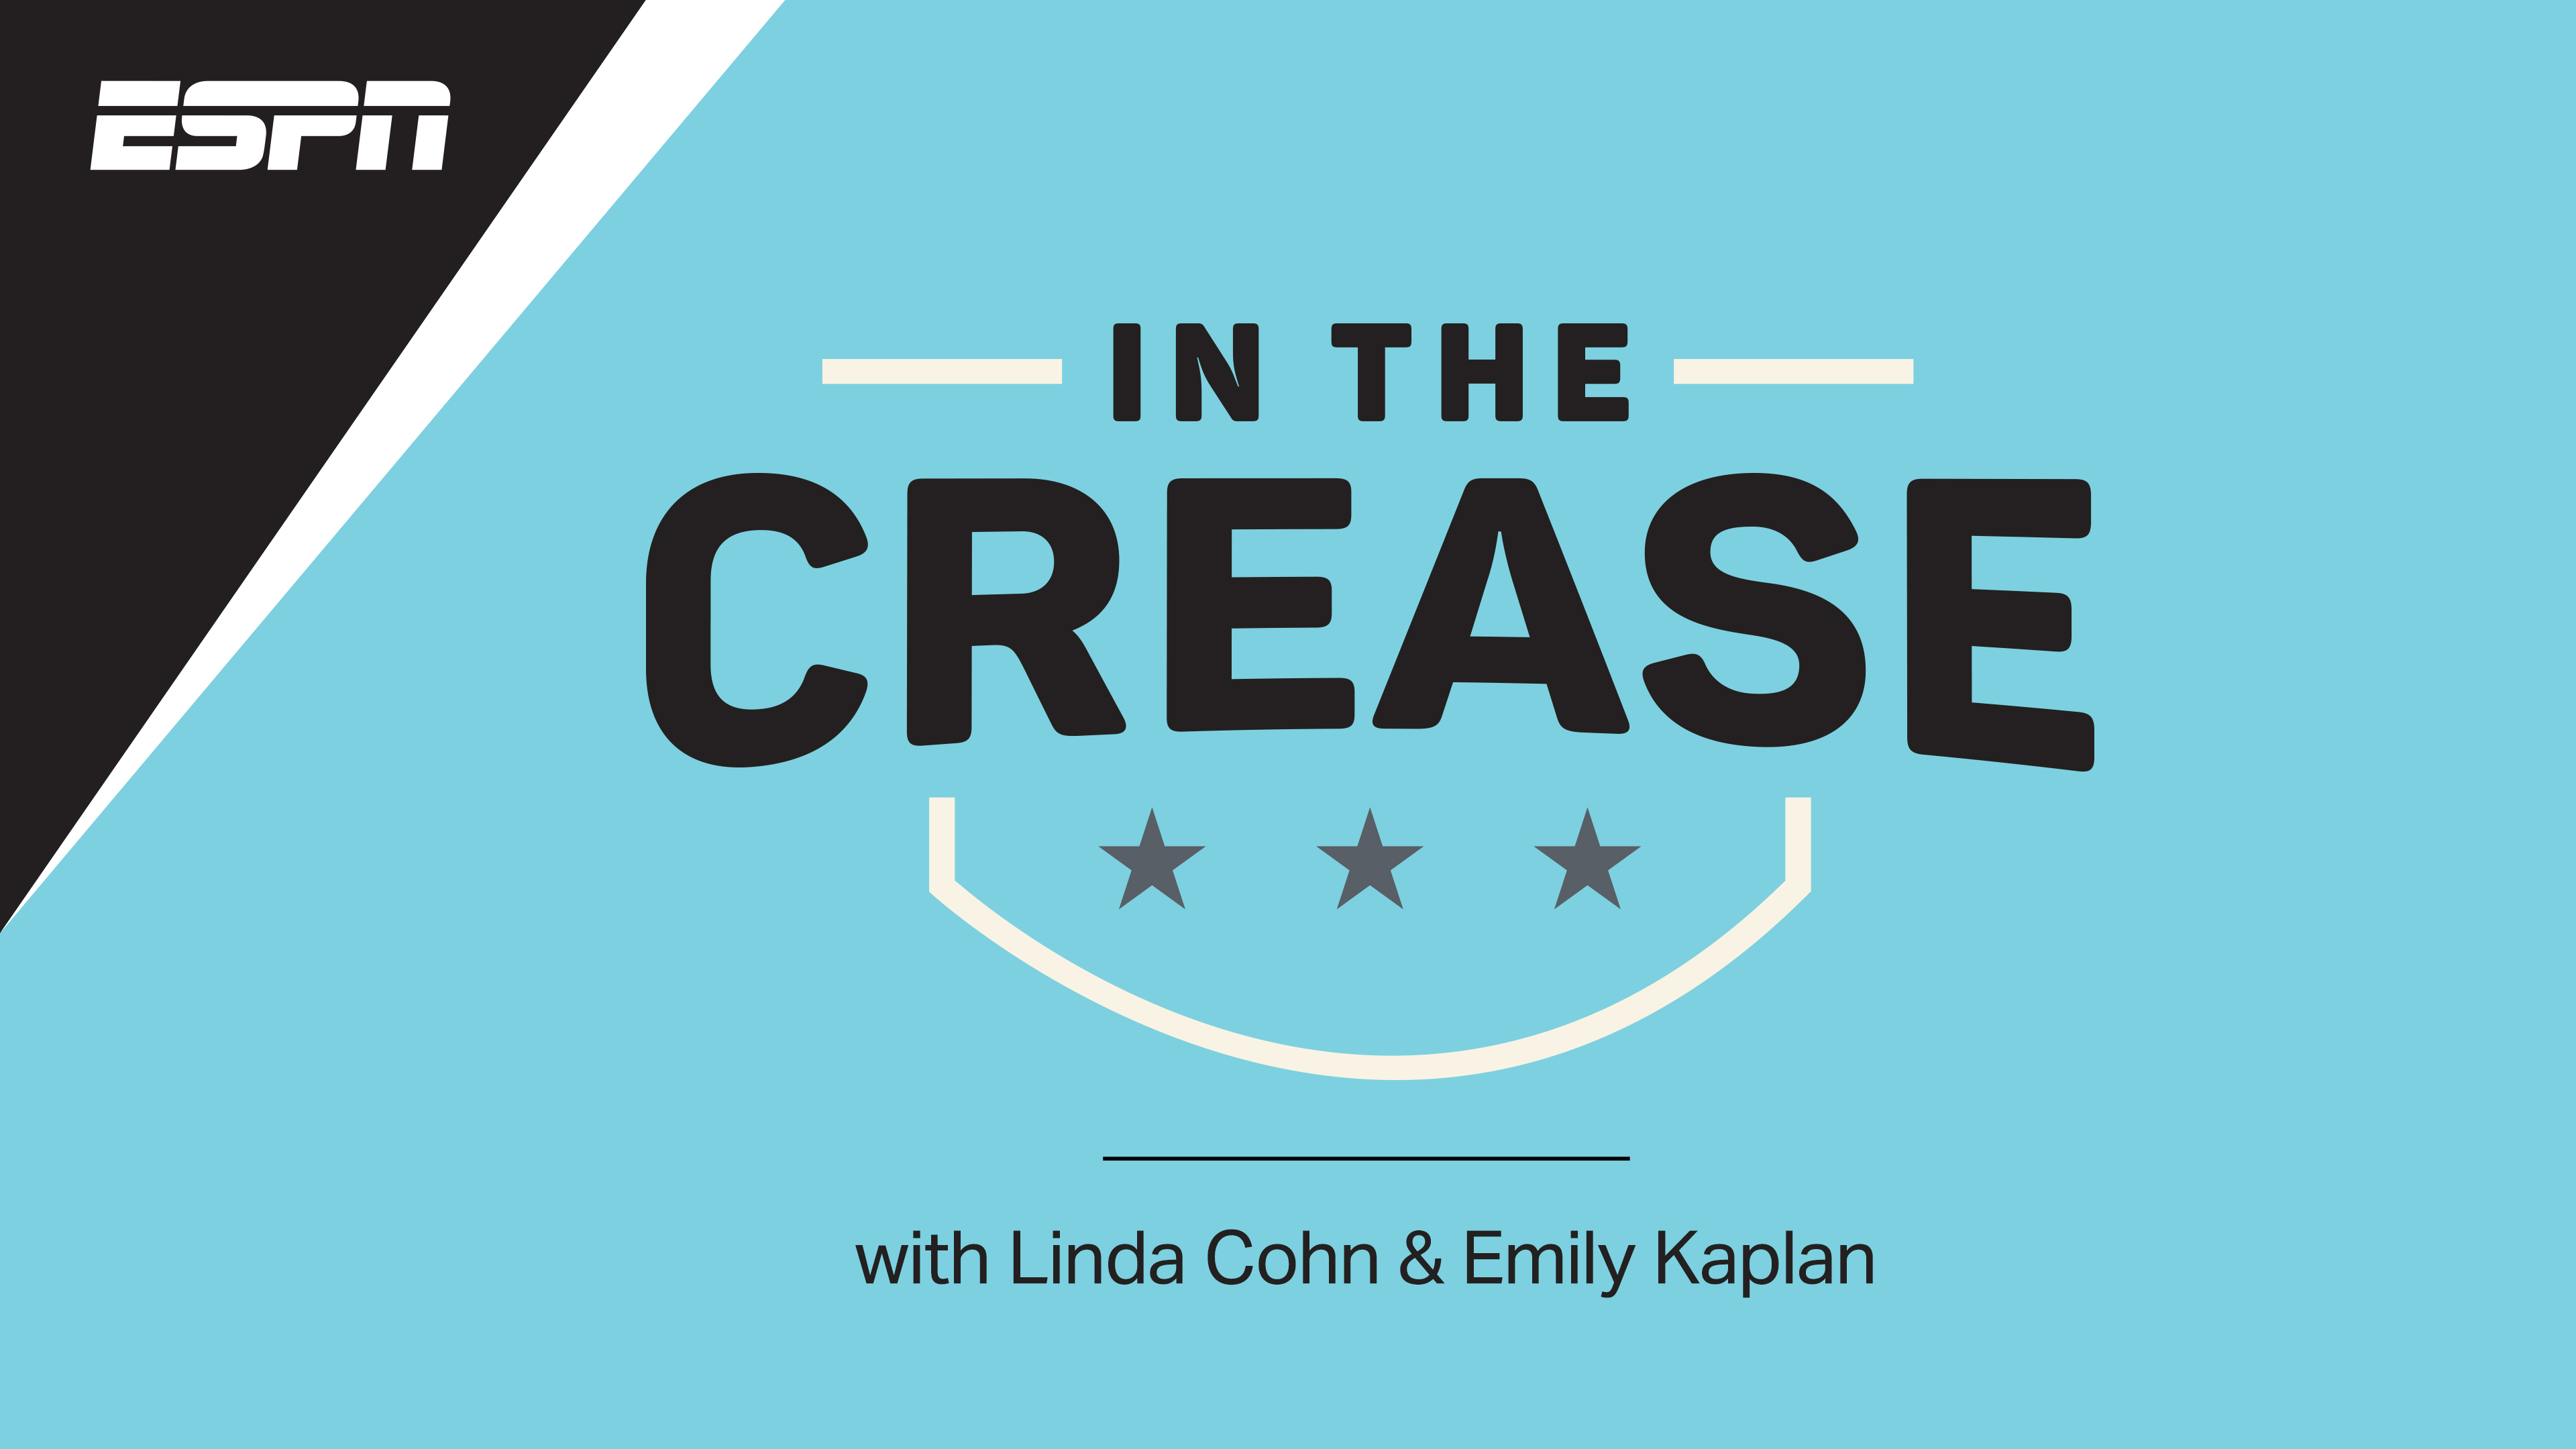 ESPN In The Crease podcast: How to listen, episode guide and more